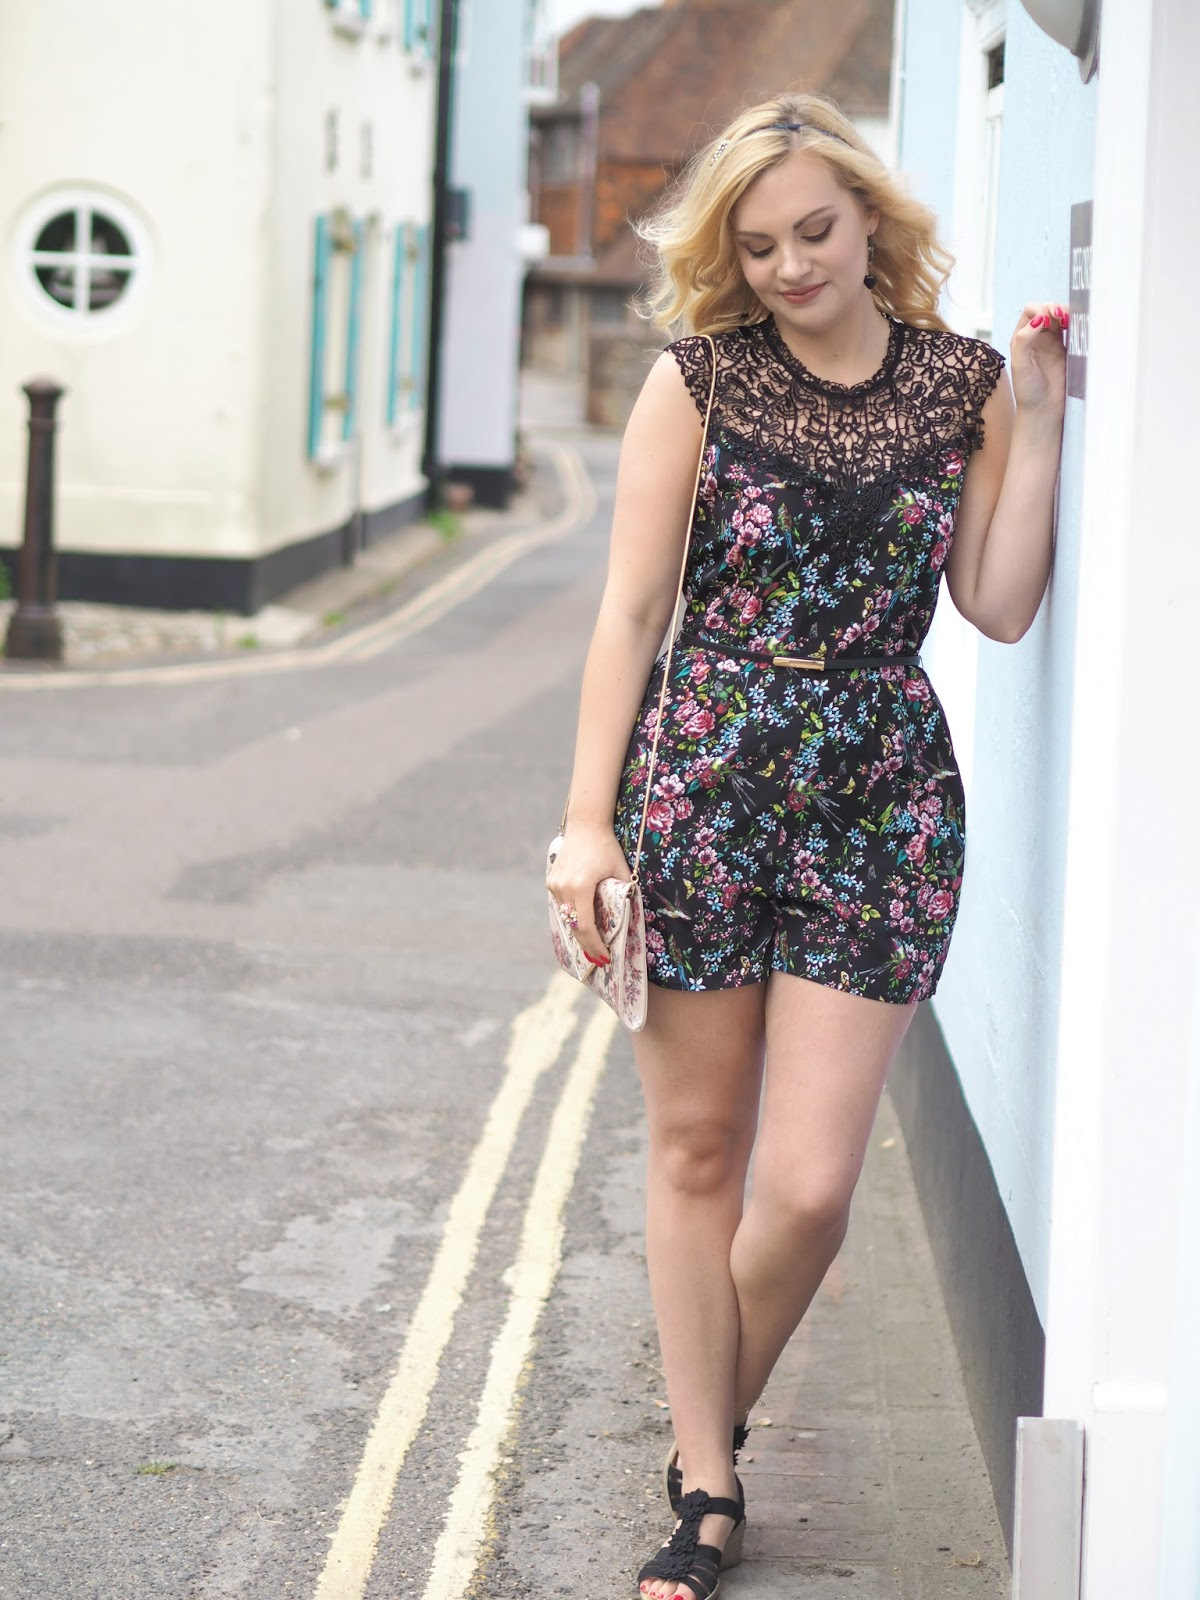 Celebrating 2 Years of Blogging, Katie Kirk Loves, Oasis Royal Worcester Playsuit, Blogger Anniversary, UK Blogger, Fashion Blogger, Style Blogger, Giveaway, Prize, Competition, Win This, Oasis Fashion, Blog Giveaway, Pink Make Up, Beauty Blogger, Pink Giveaway, Yankee Candle